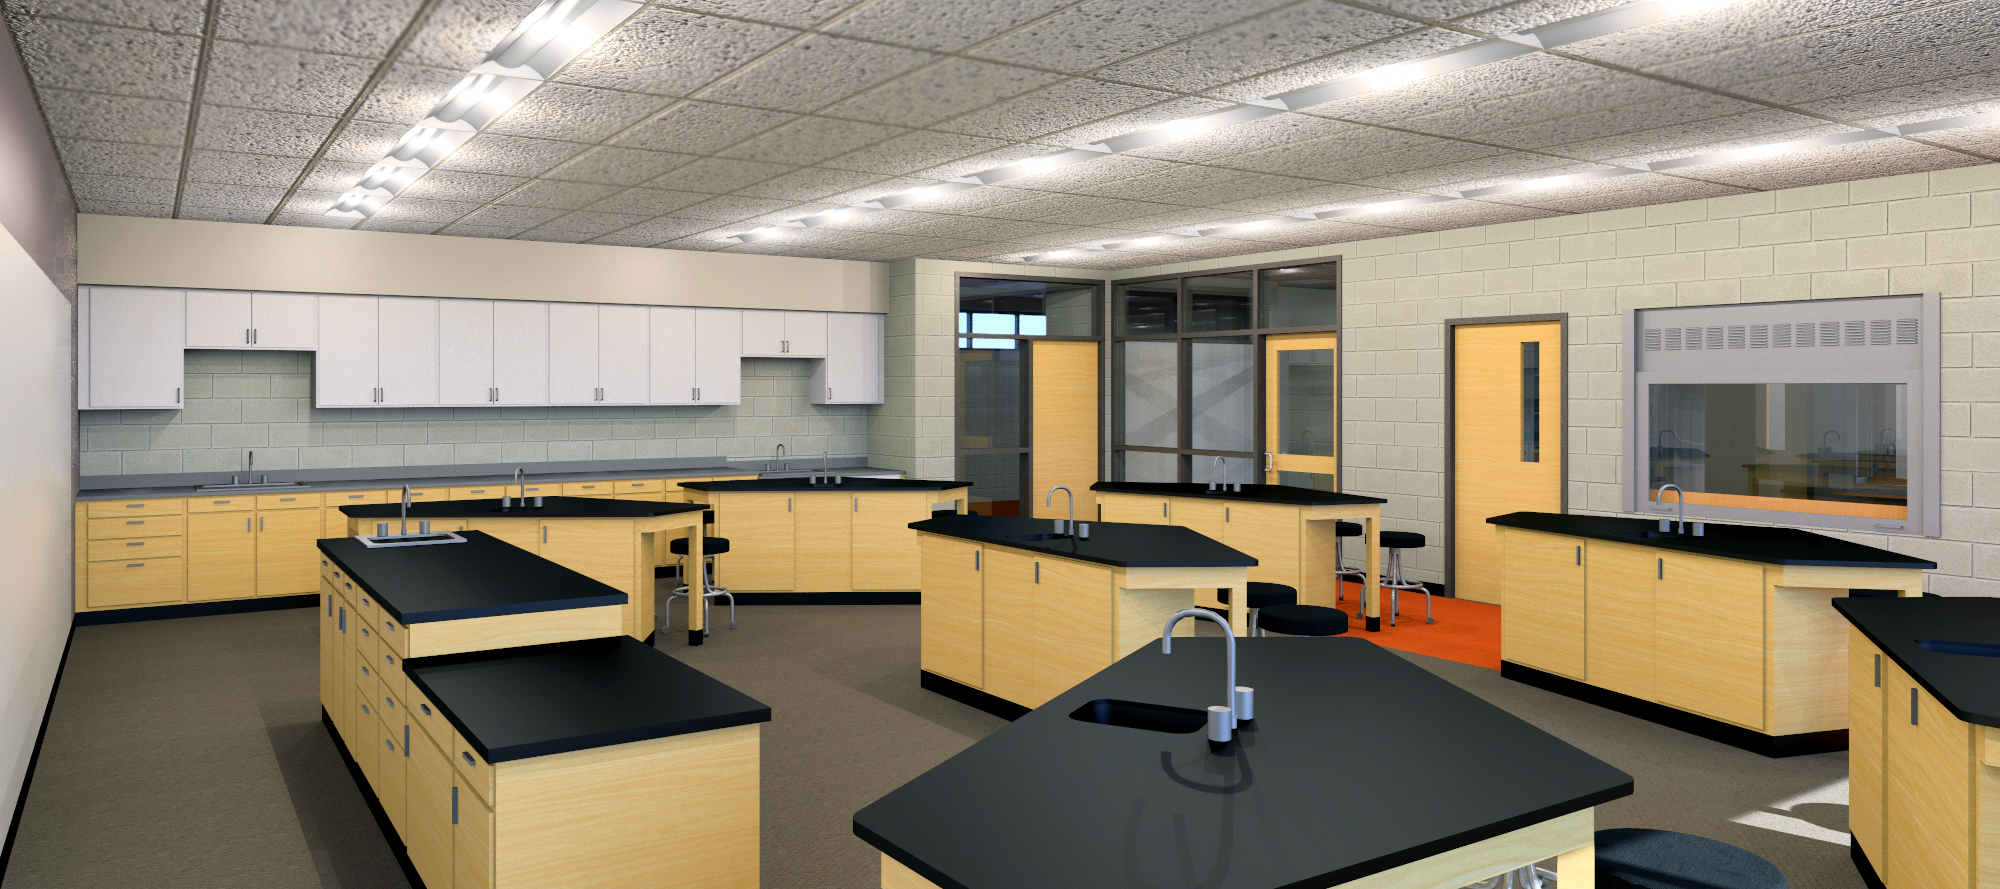 School Classroom Design Guide ~ College classroom design images elementary school